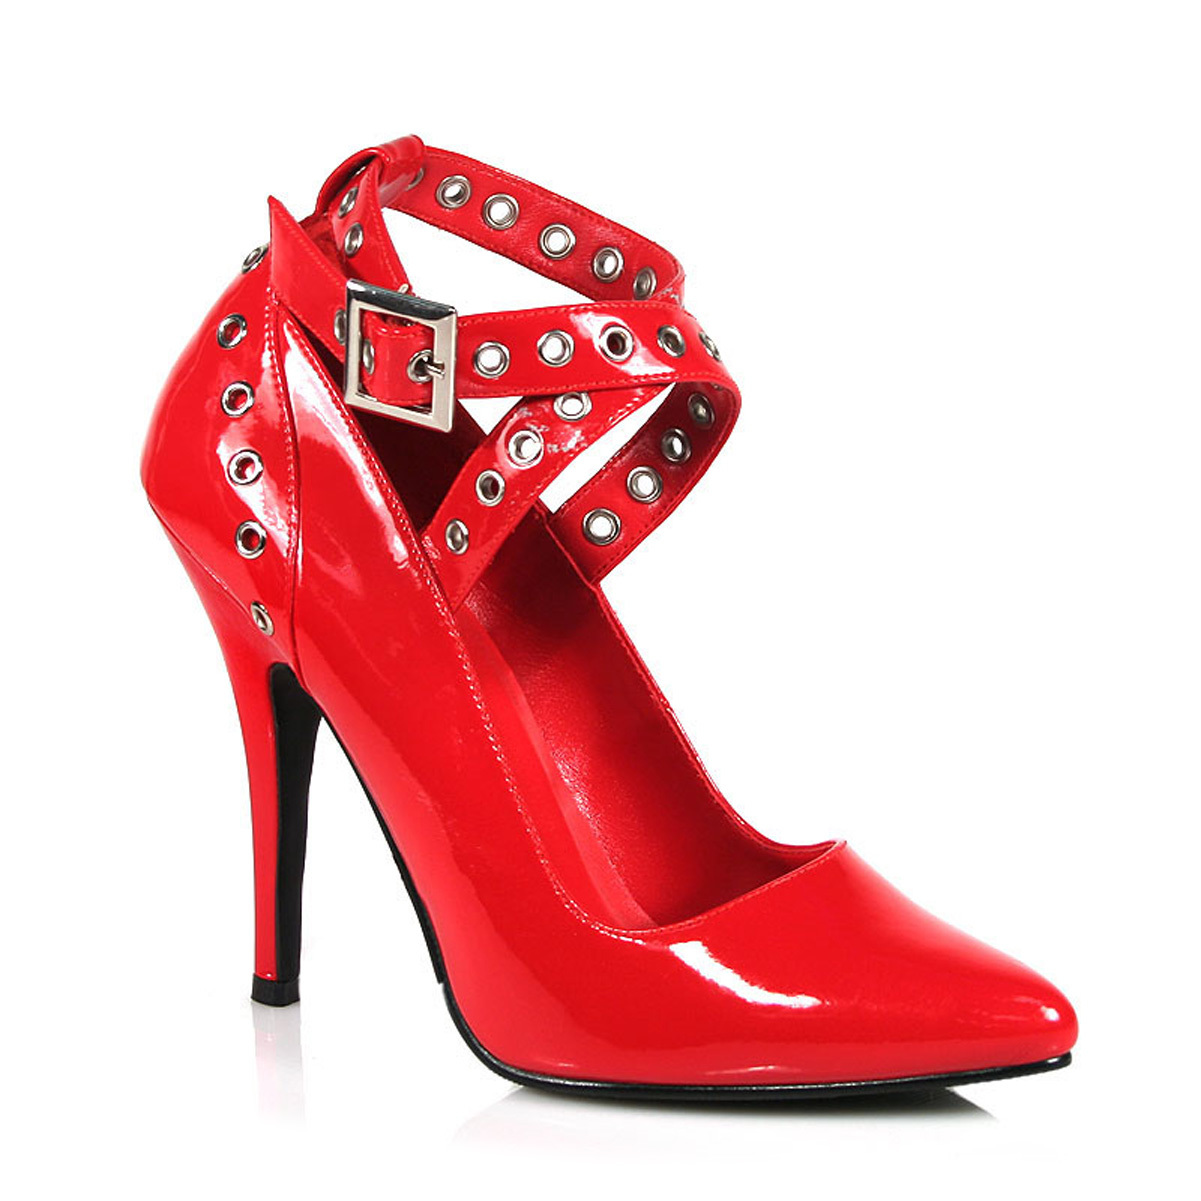 Womens Red Pumps 5 Inch Heels Sexy Shoes Crisscross Pump Eyelet-Hole Patent by